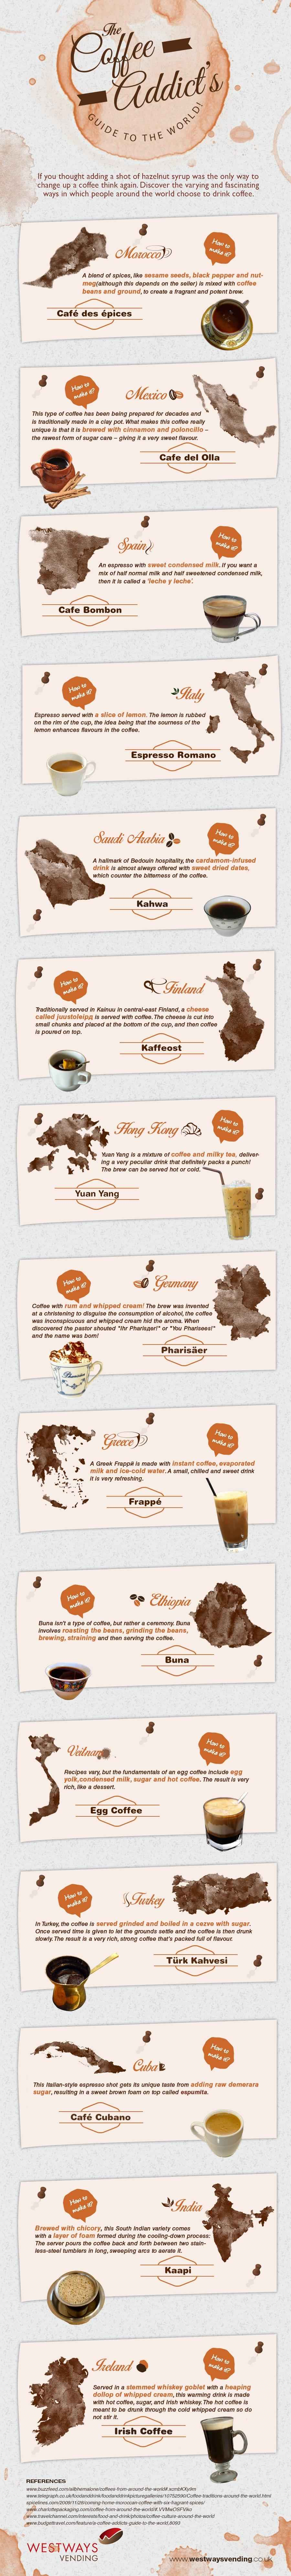 coffees of the world inforgraphic